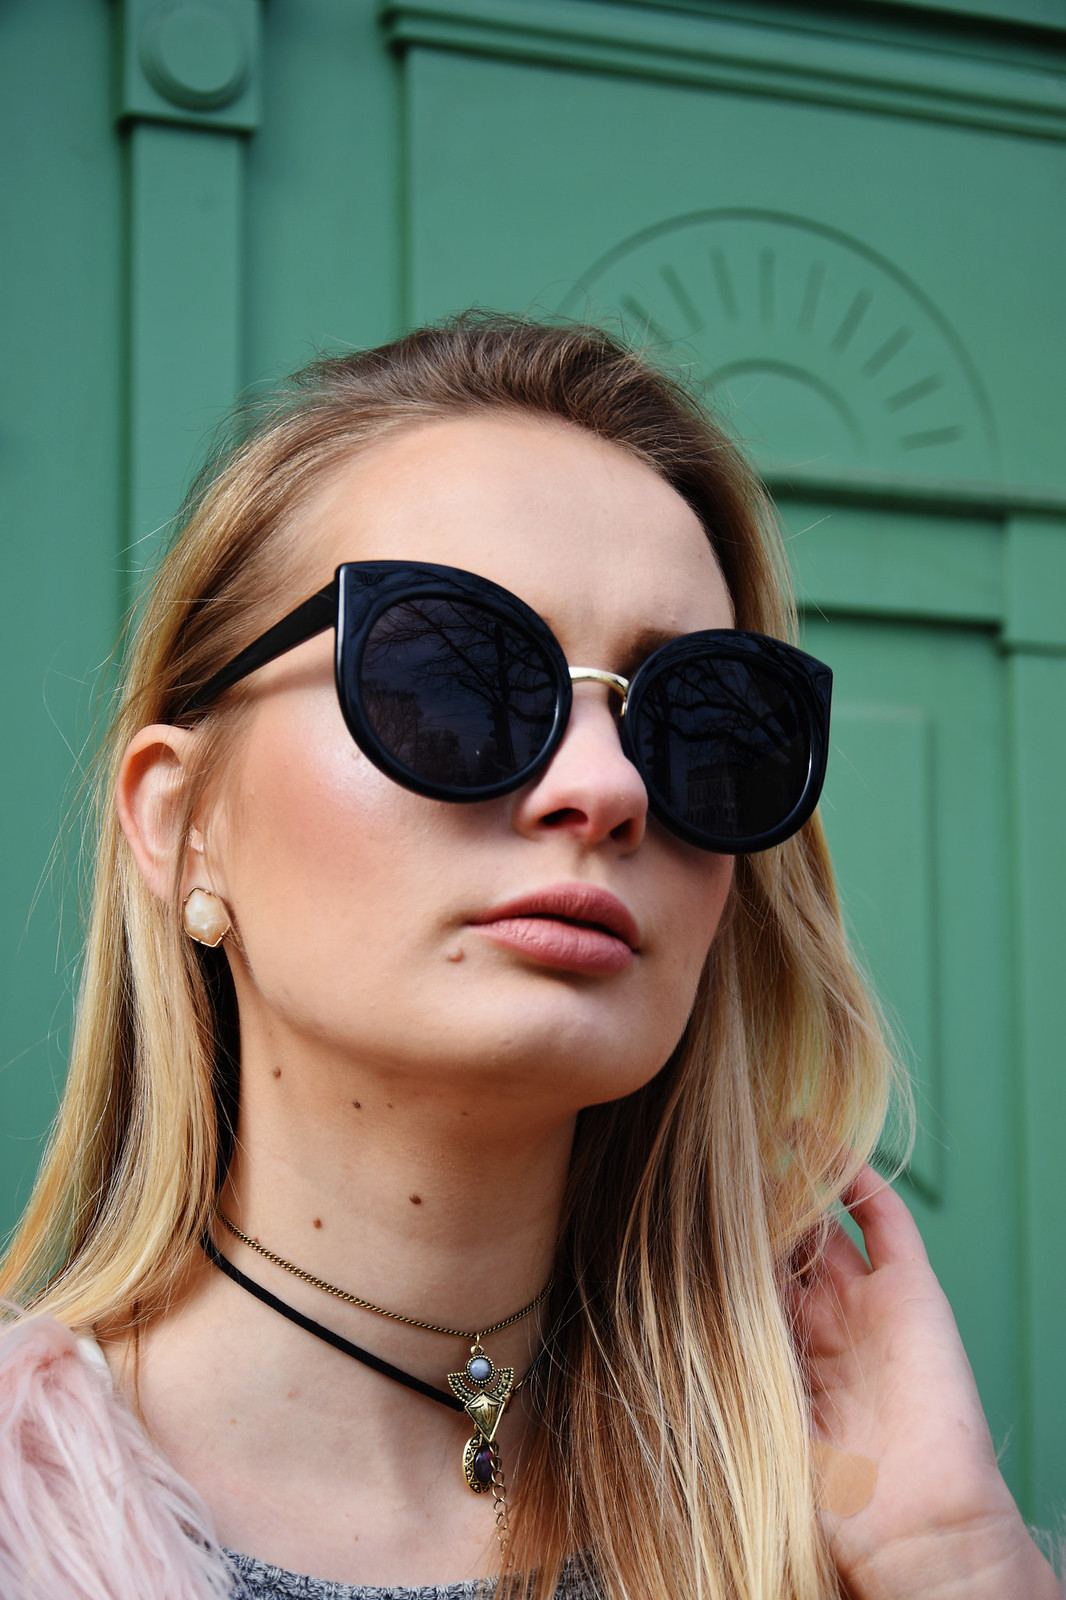 Cateye sunglasses outfit inspiration